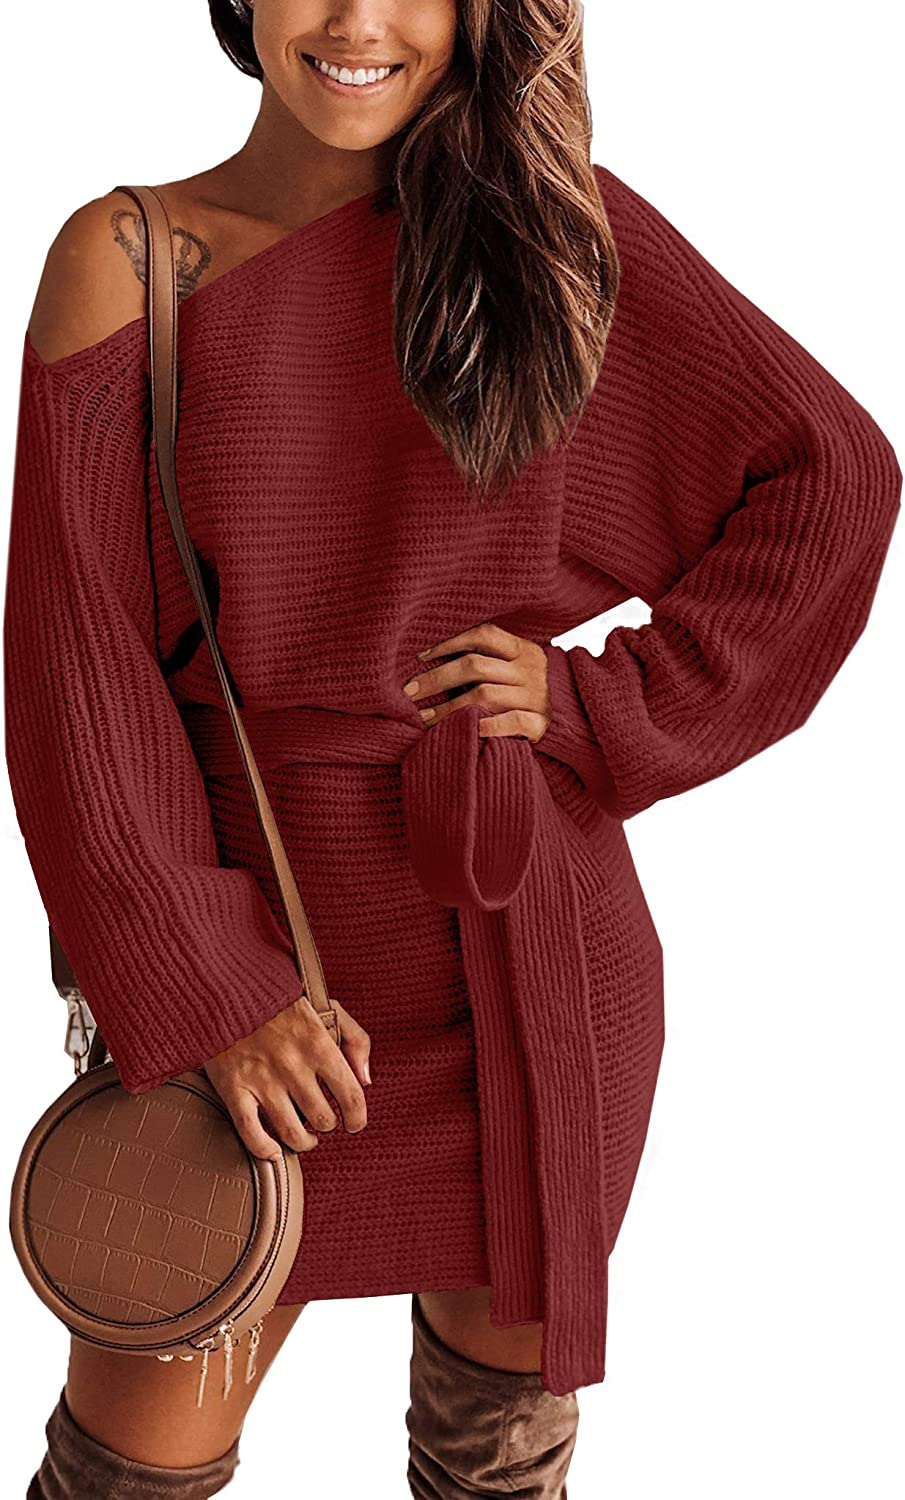 Clarisbelle Women's Warm Open Shoulder Solid Color Sweater Belted Batwing Sleeve Casual Tunic Dress Maroon M